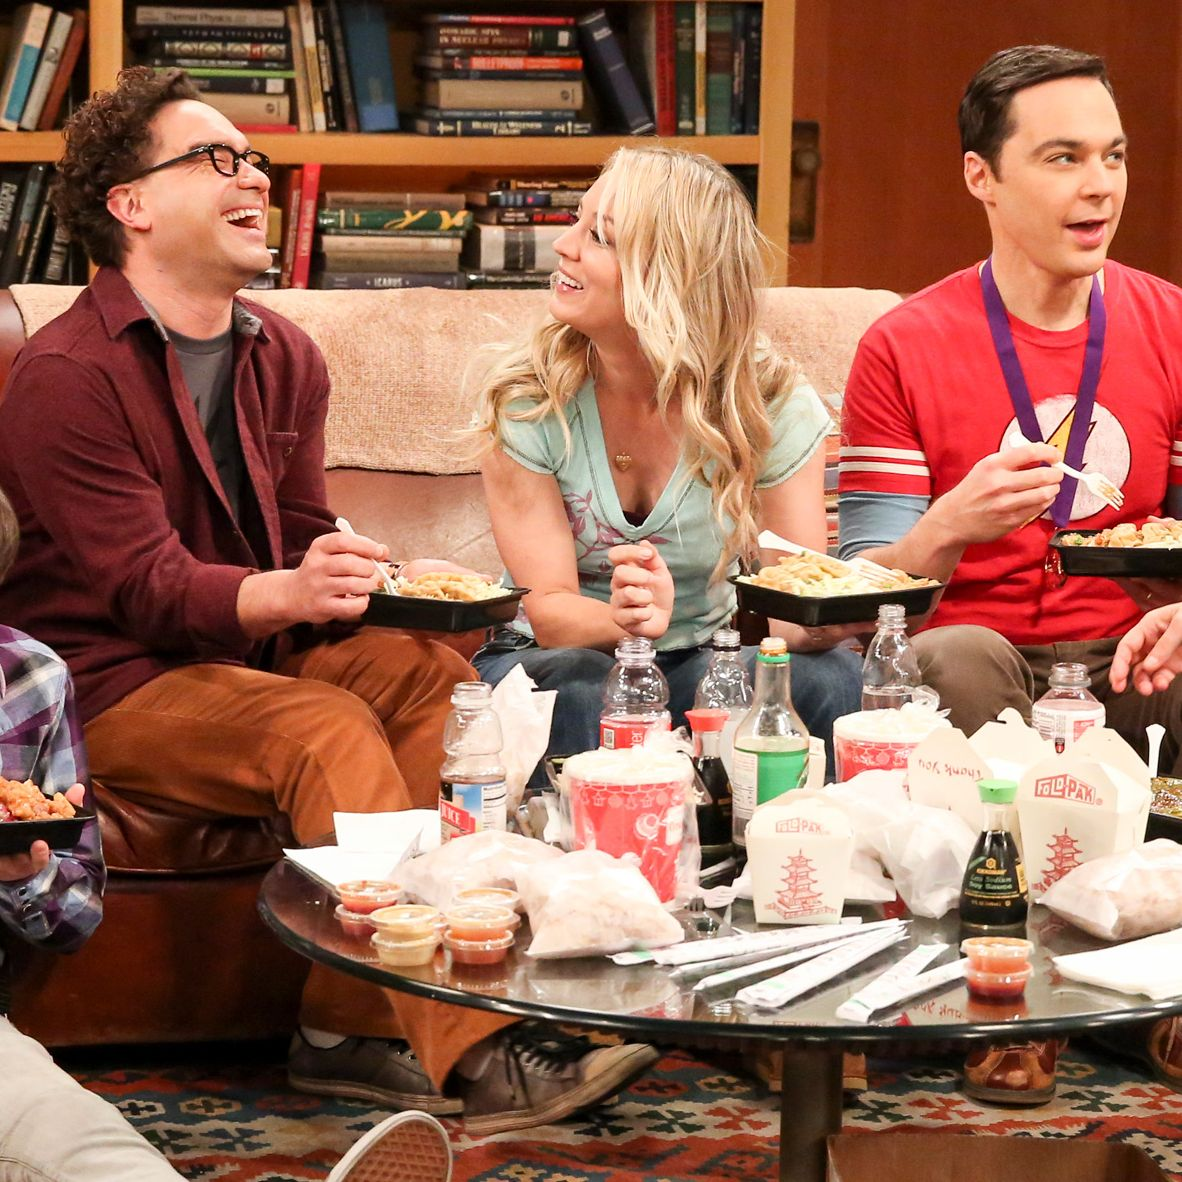 The Big Bang Theory is over but what does the future hold for the franchise?